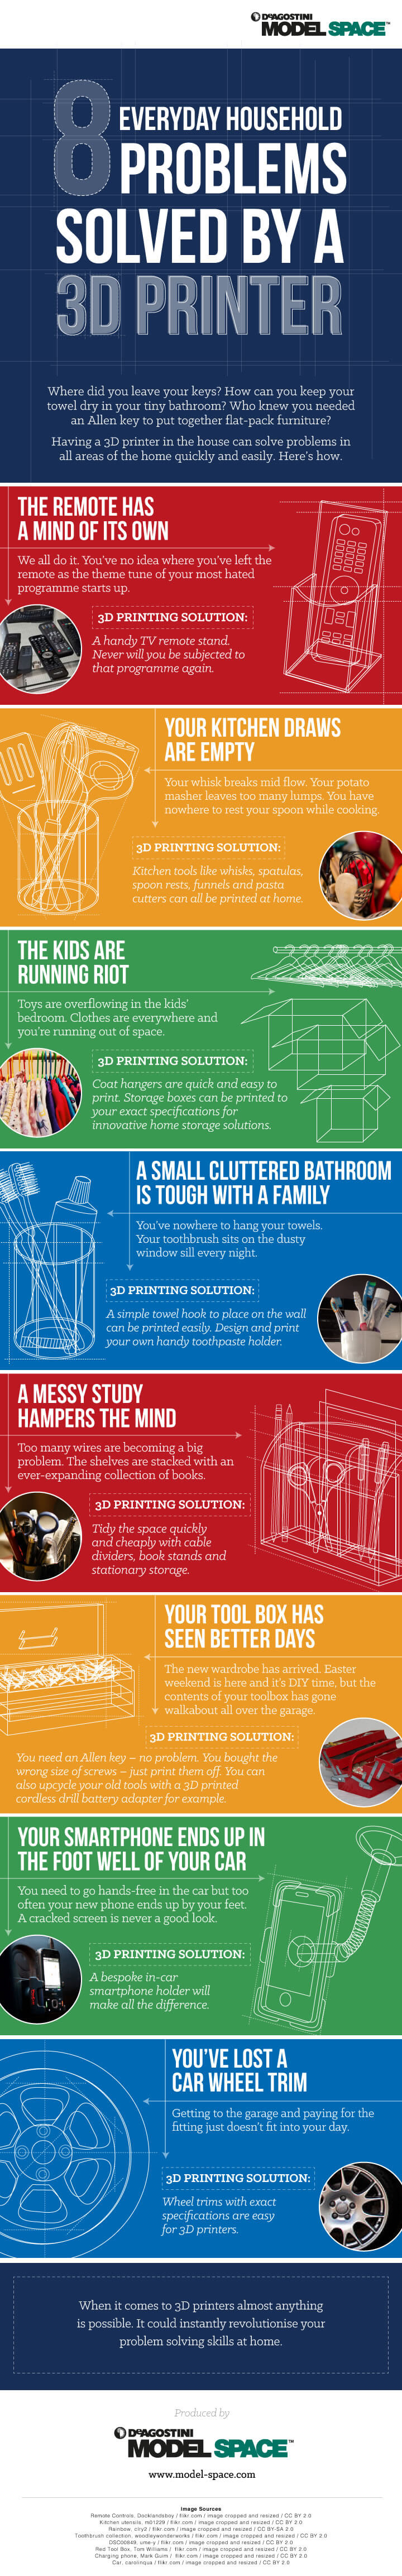 8 Everyday Household Problems Solved by a 3D Printer